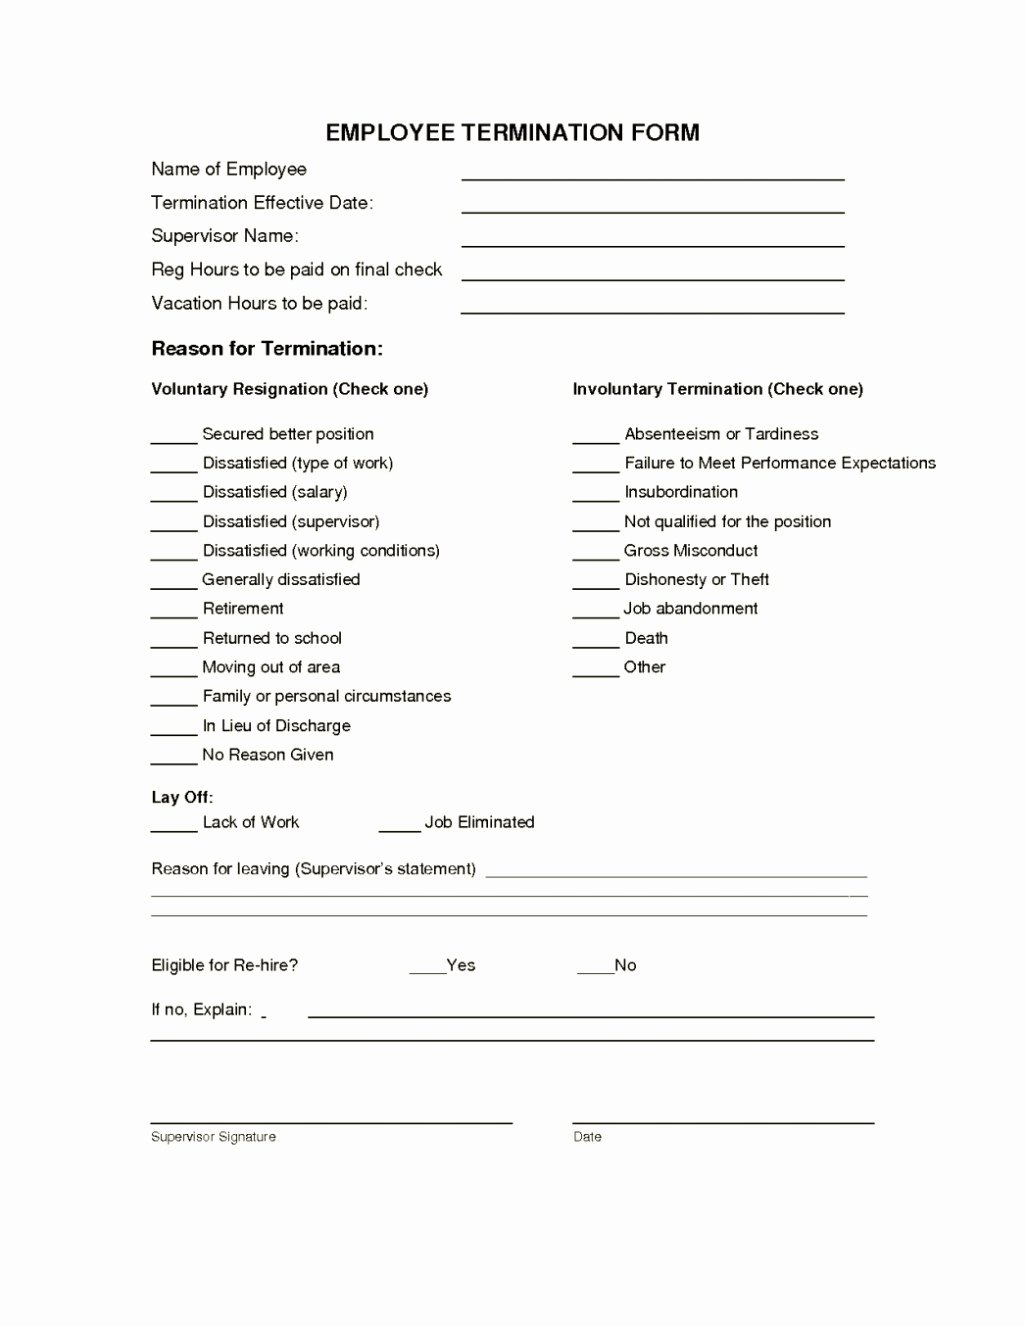 Employment Separation form Template Awesome Employee Termination form Template Template Update234